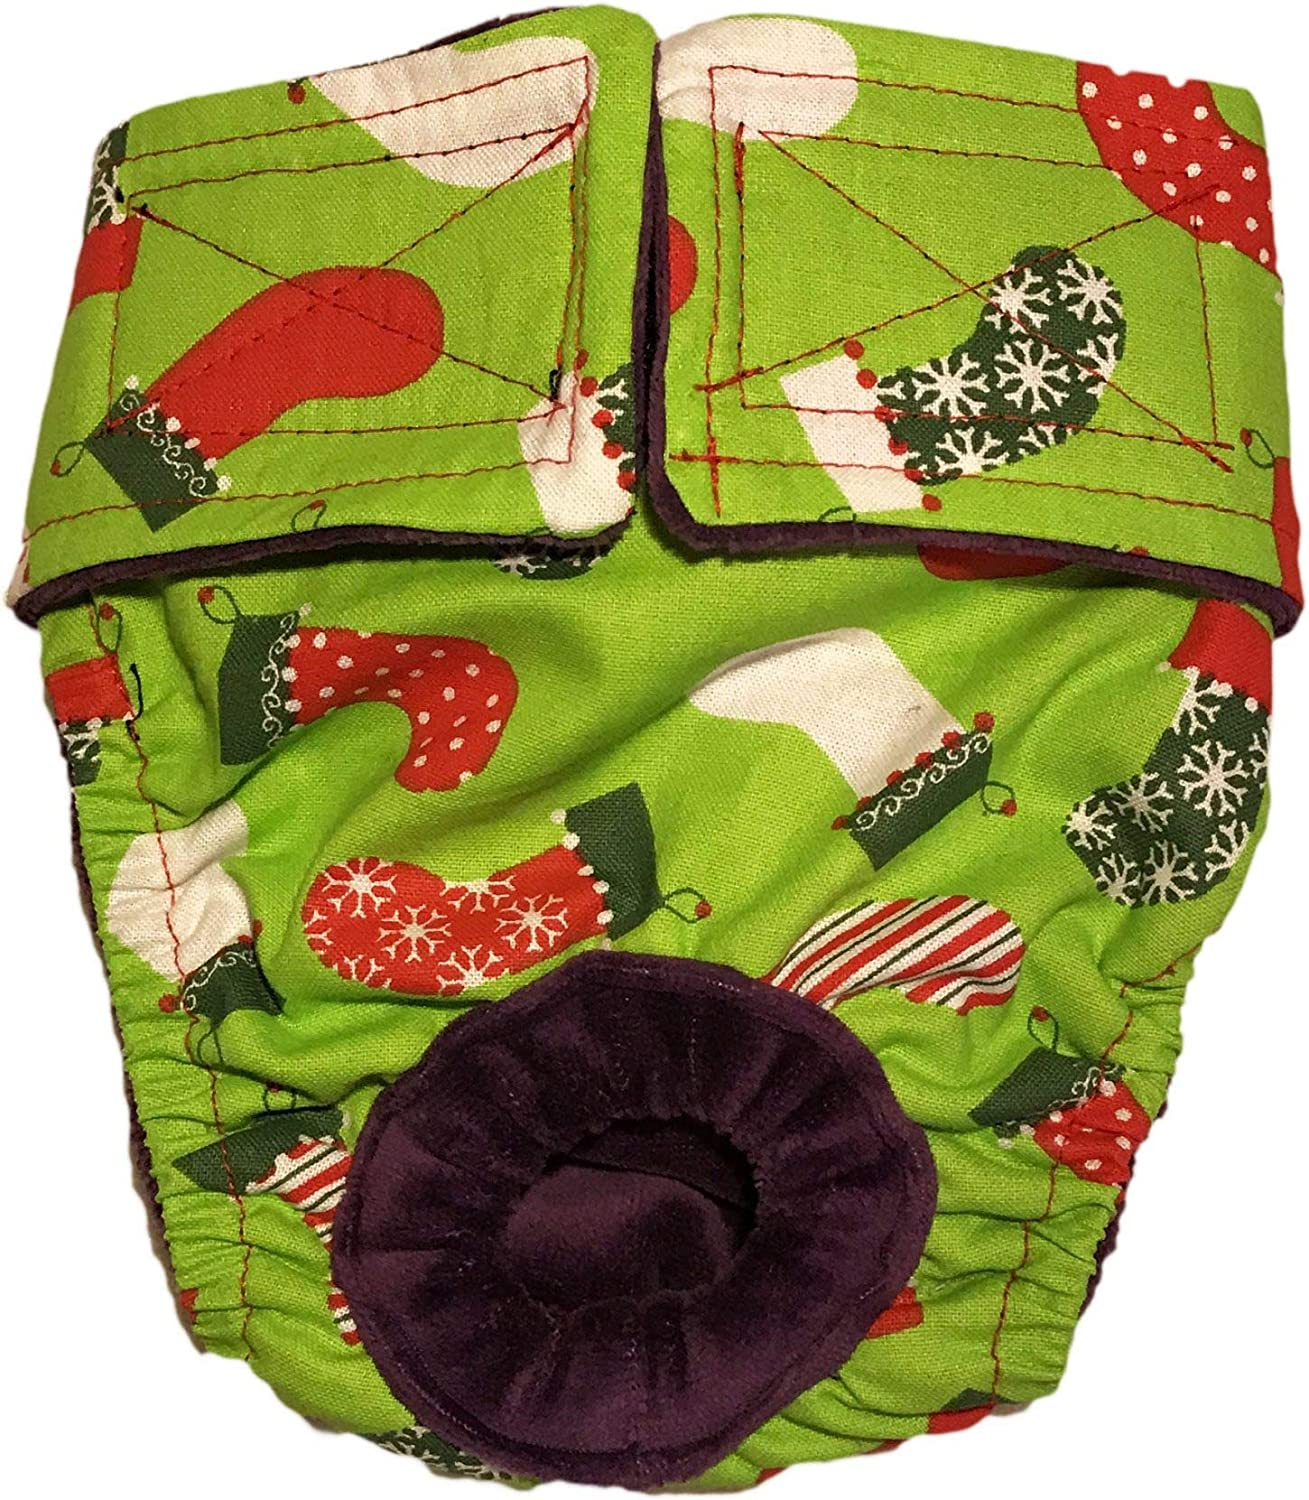 Barkertime Special price Dog Diapers - Max 84% OFF Made in on Gr USA Stockings Christmas